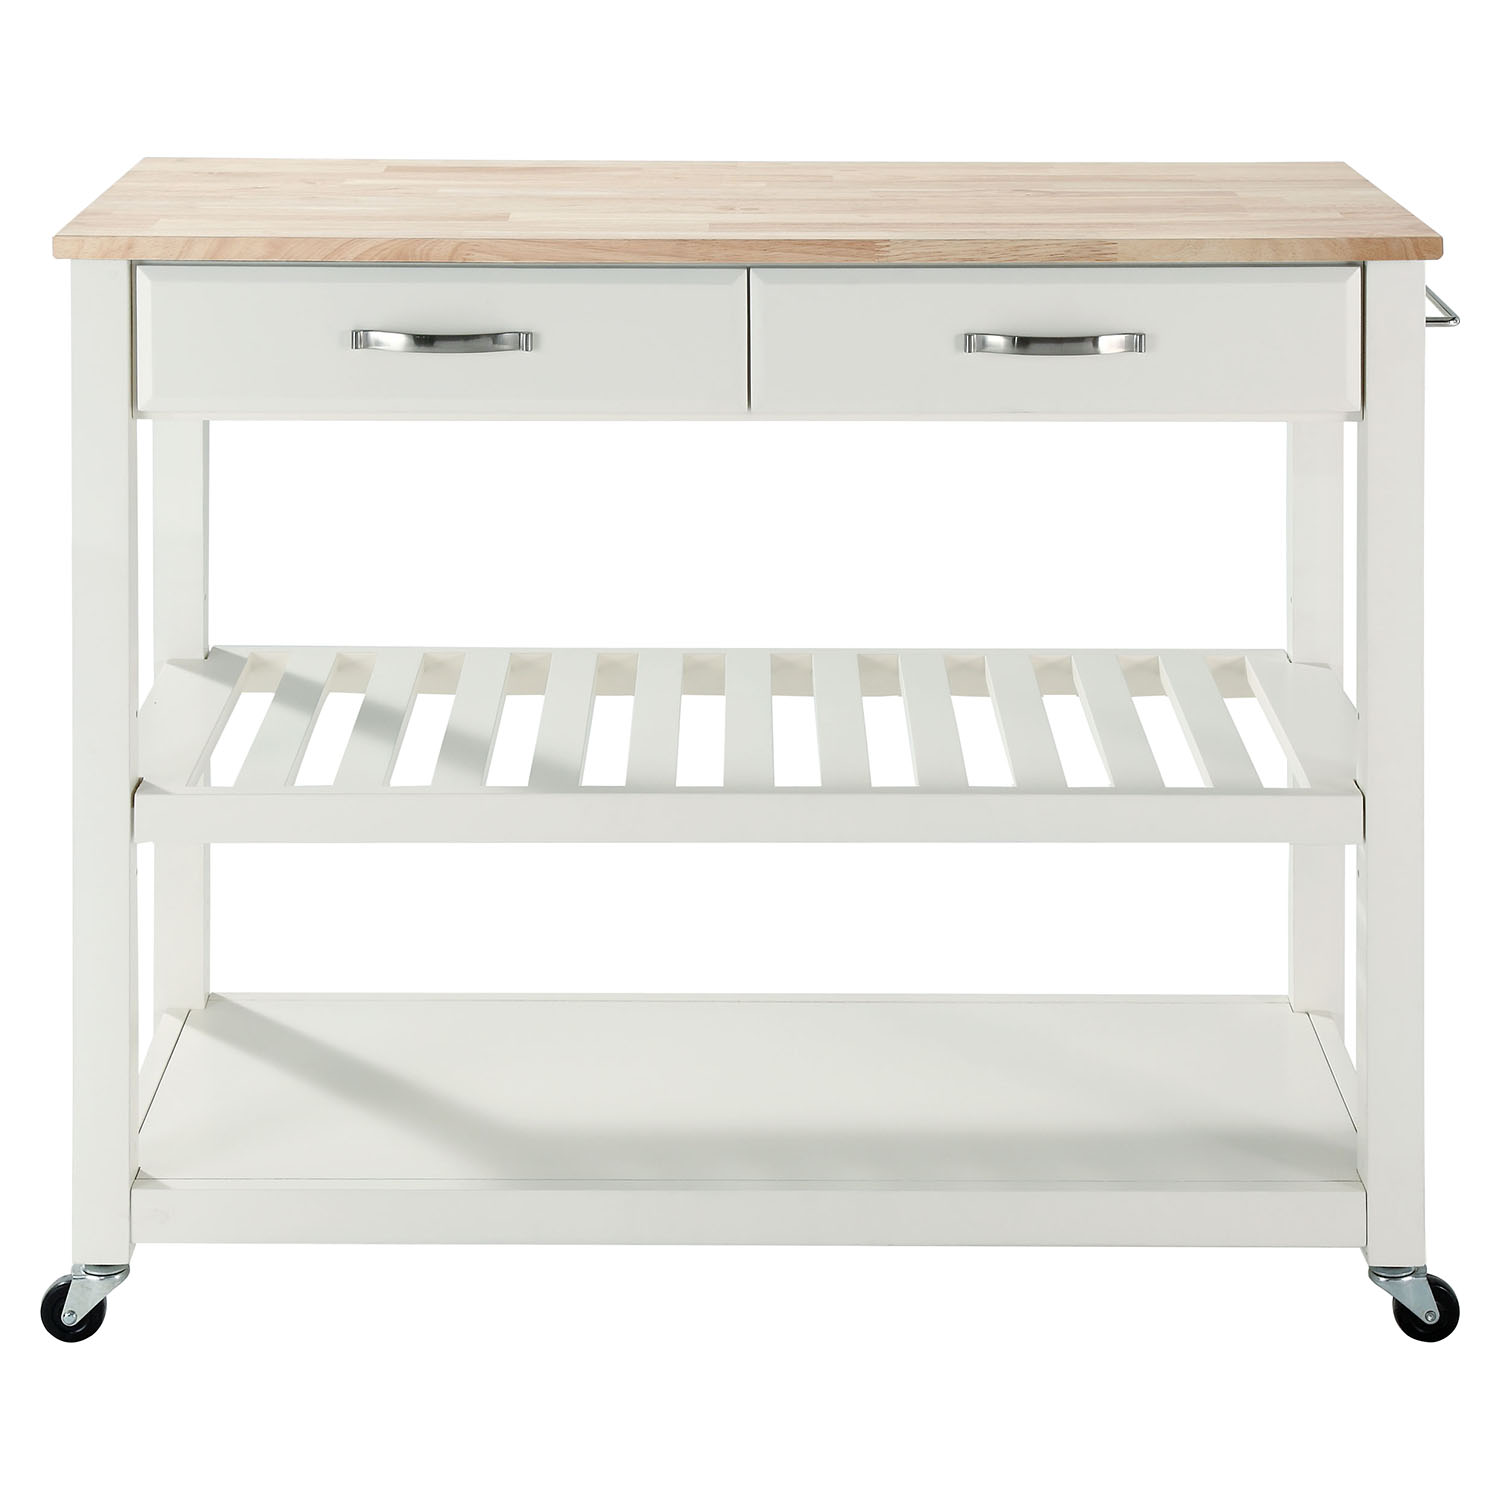 Natural Wood Top Kitchen Cart/Island - Optional Stool Storage, White - CROS-KF30051WH